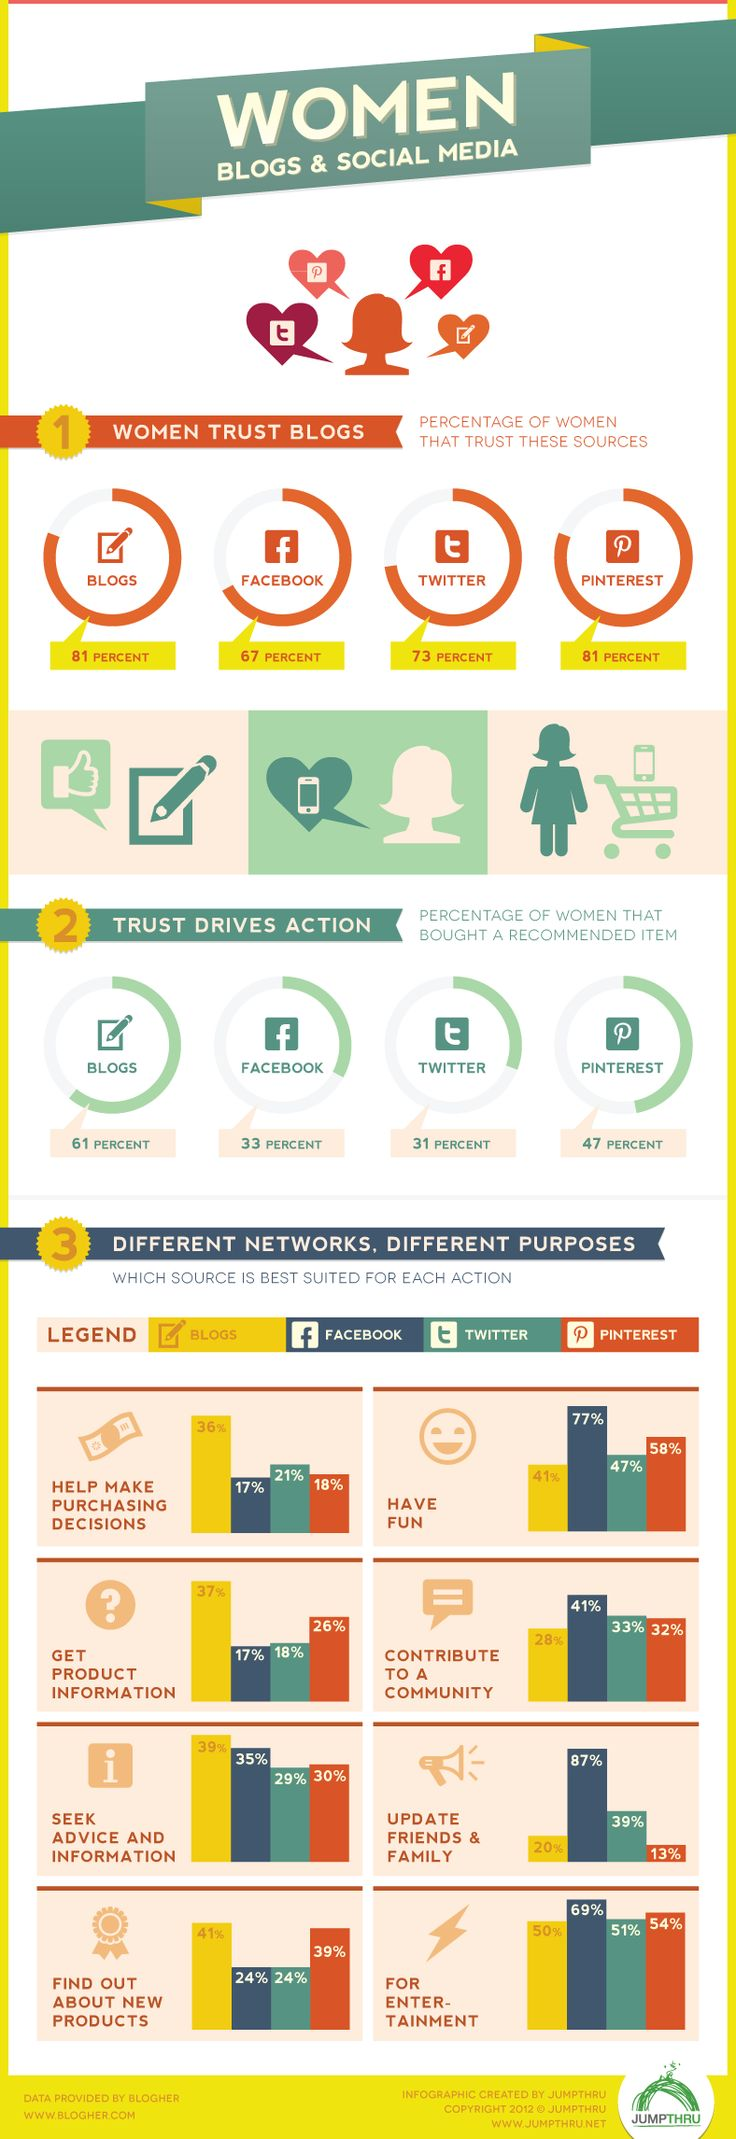 Women connecting with women online: the trusted relationship between women and the Bloggers and Pinners they follow. -JumpThru Infographic